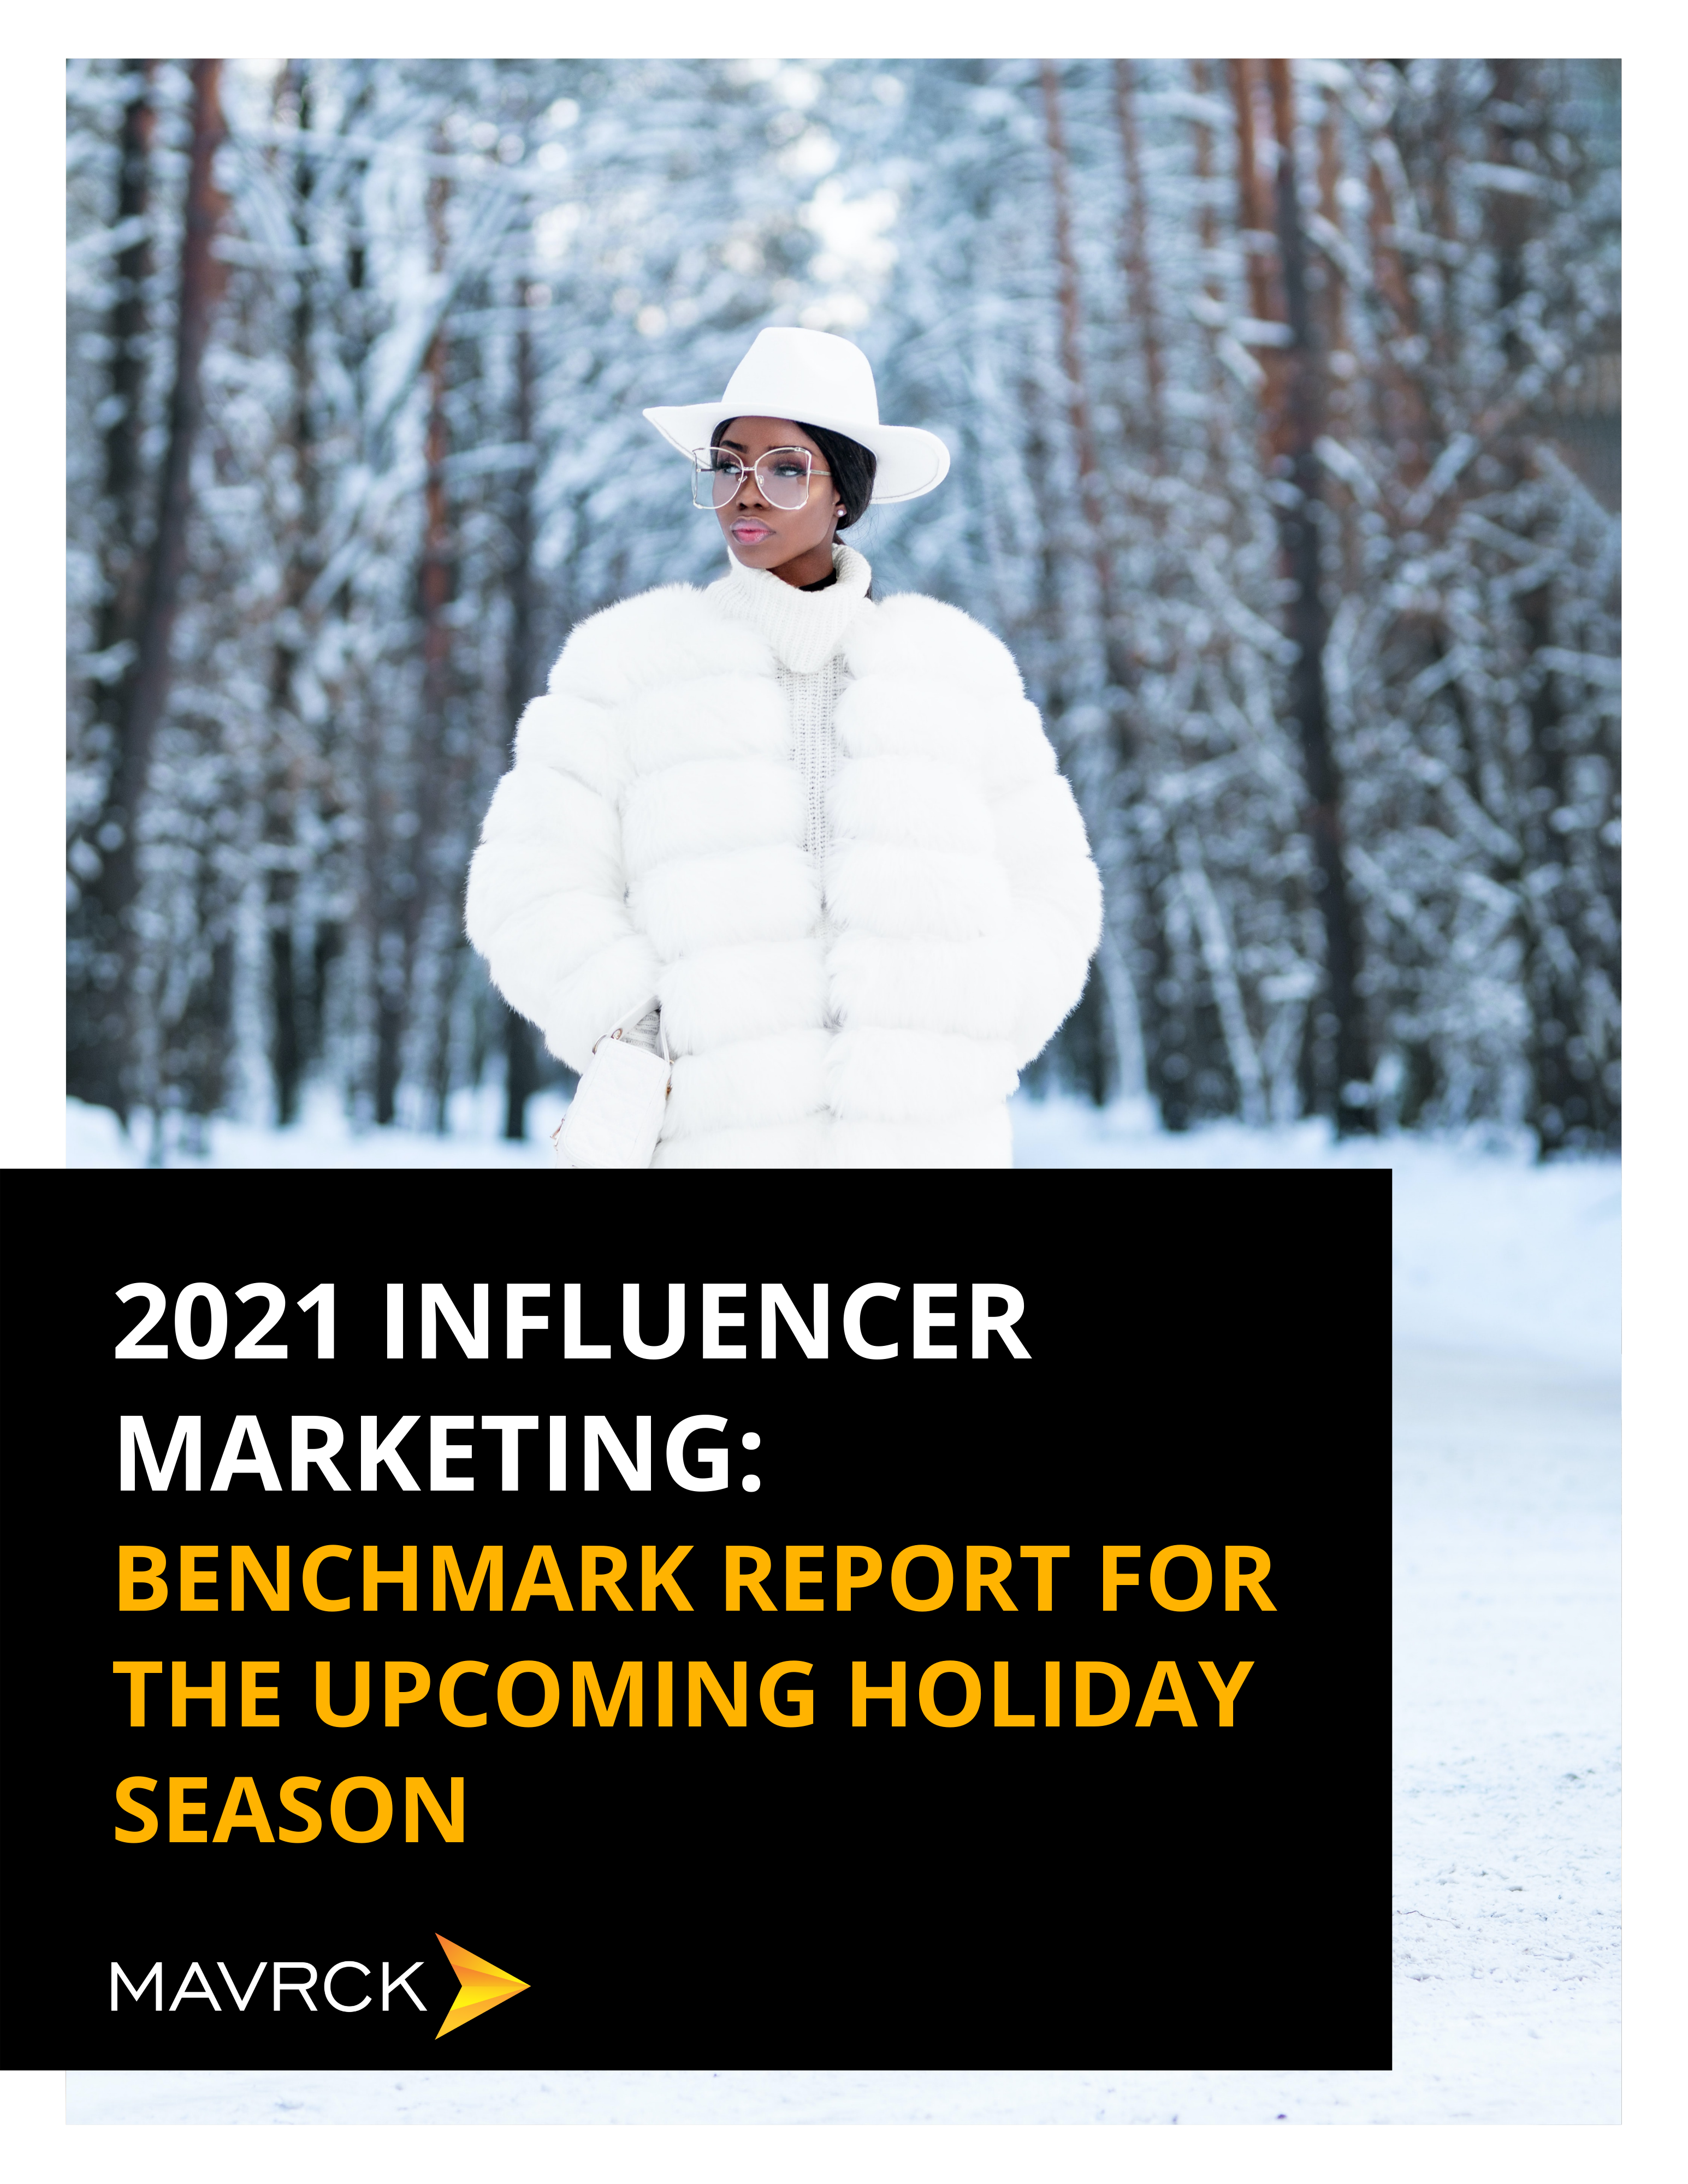 The Marketers Guide To Activating Influencers Beyond Instagram-Sep-01-2021-02-46-56-86-PM